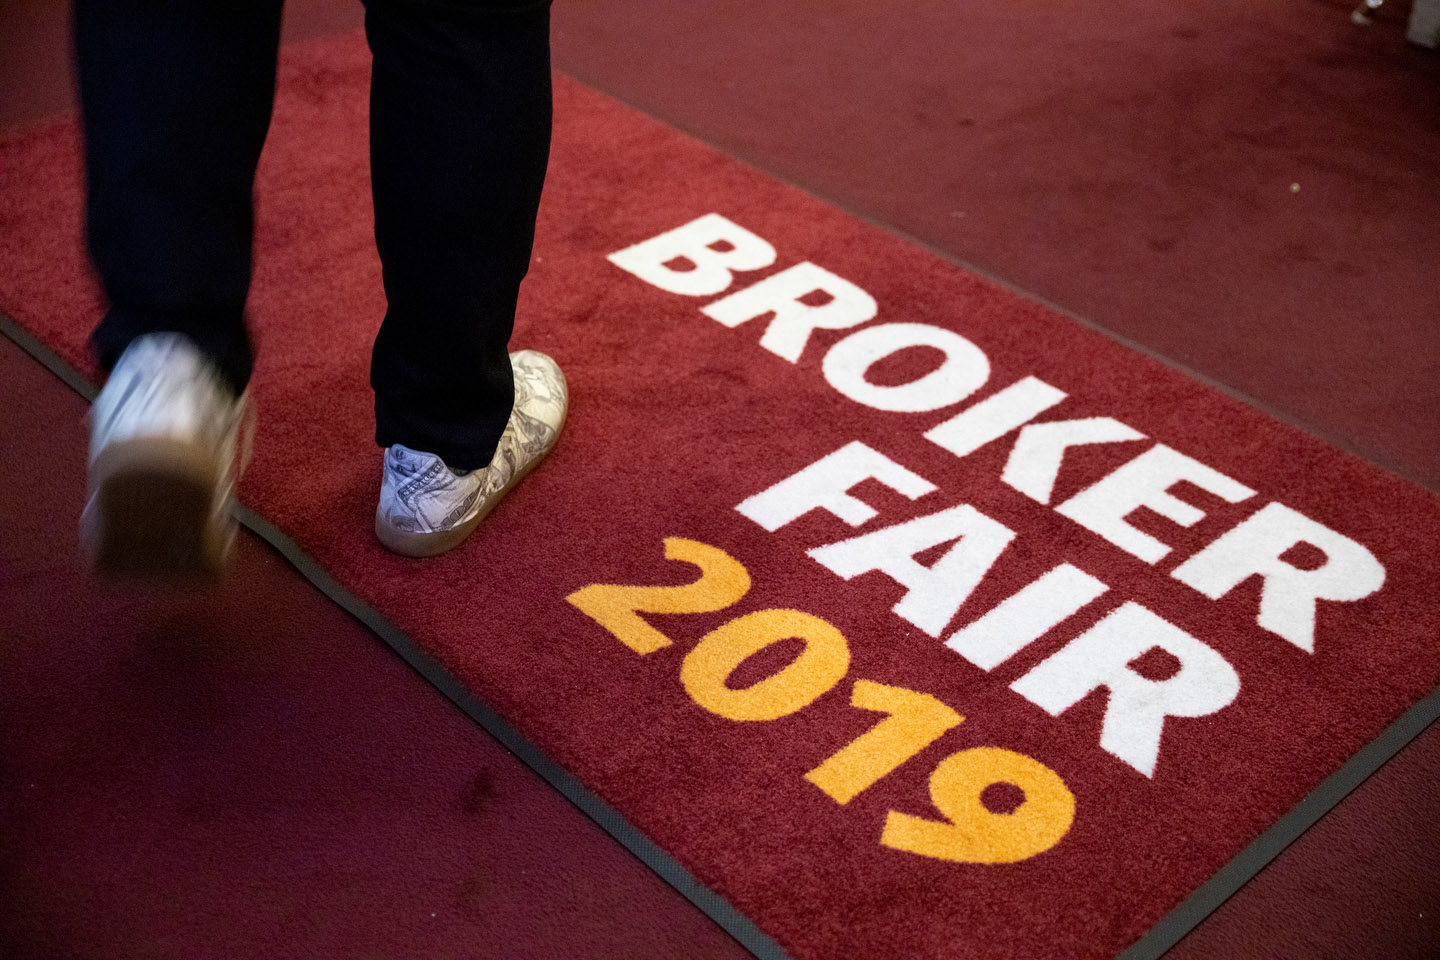 Broker Fair 2019 - Presented by deBanked - 272